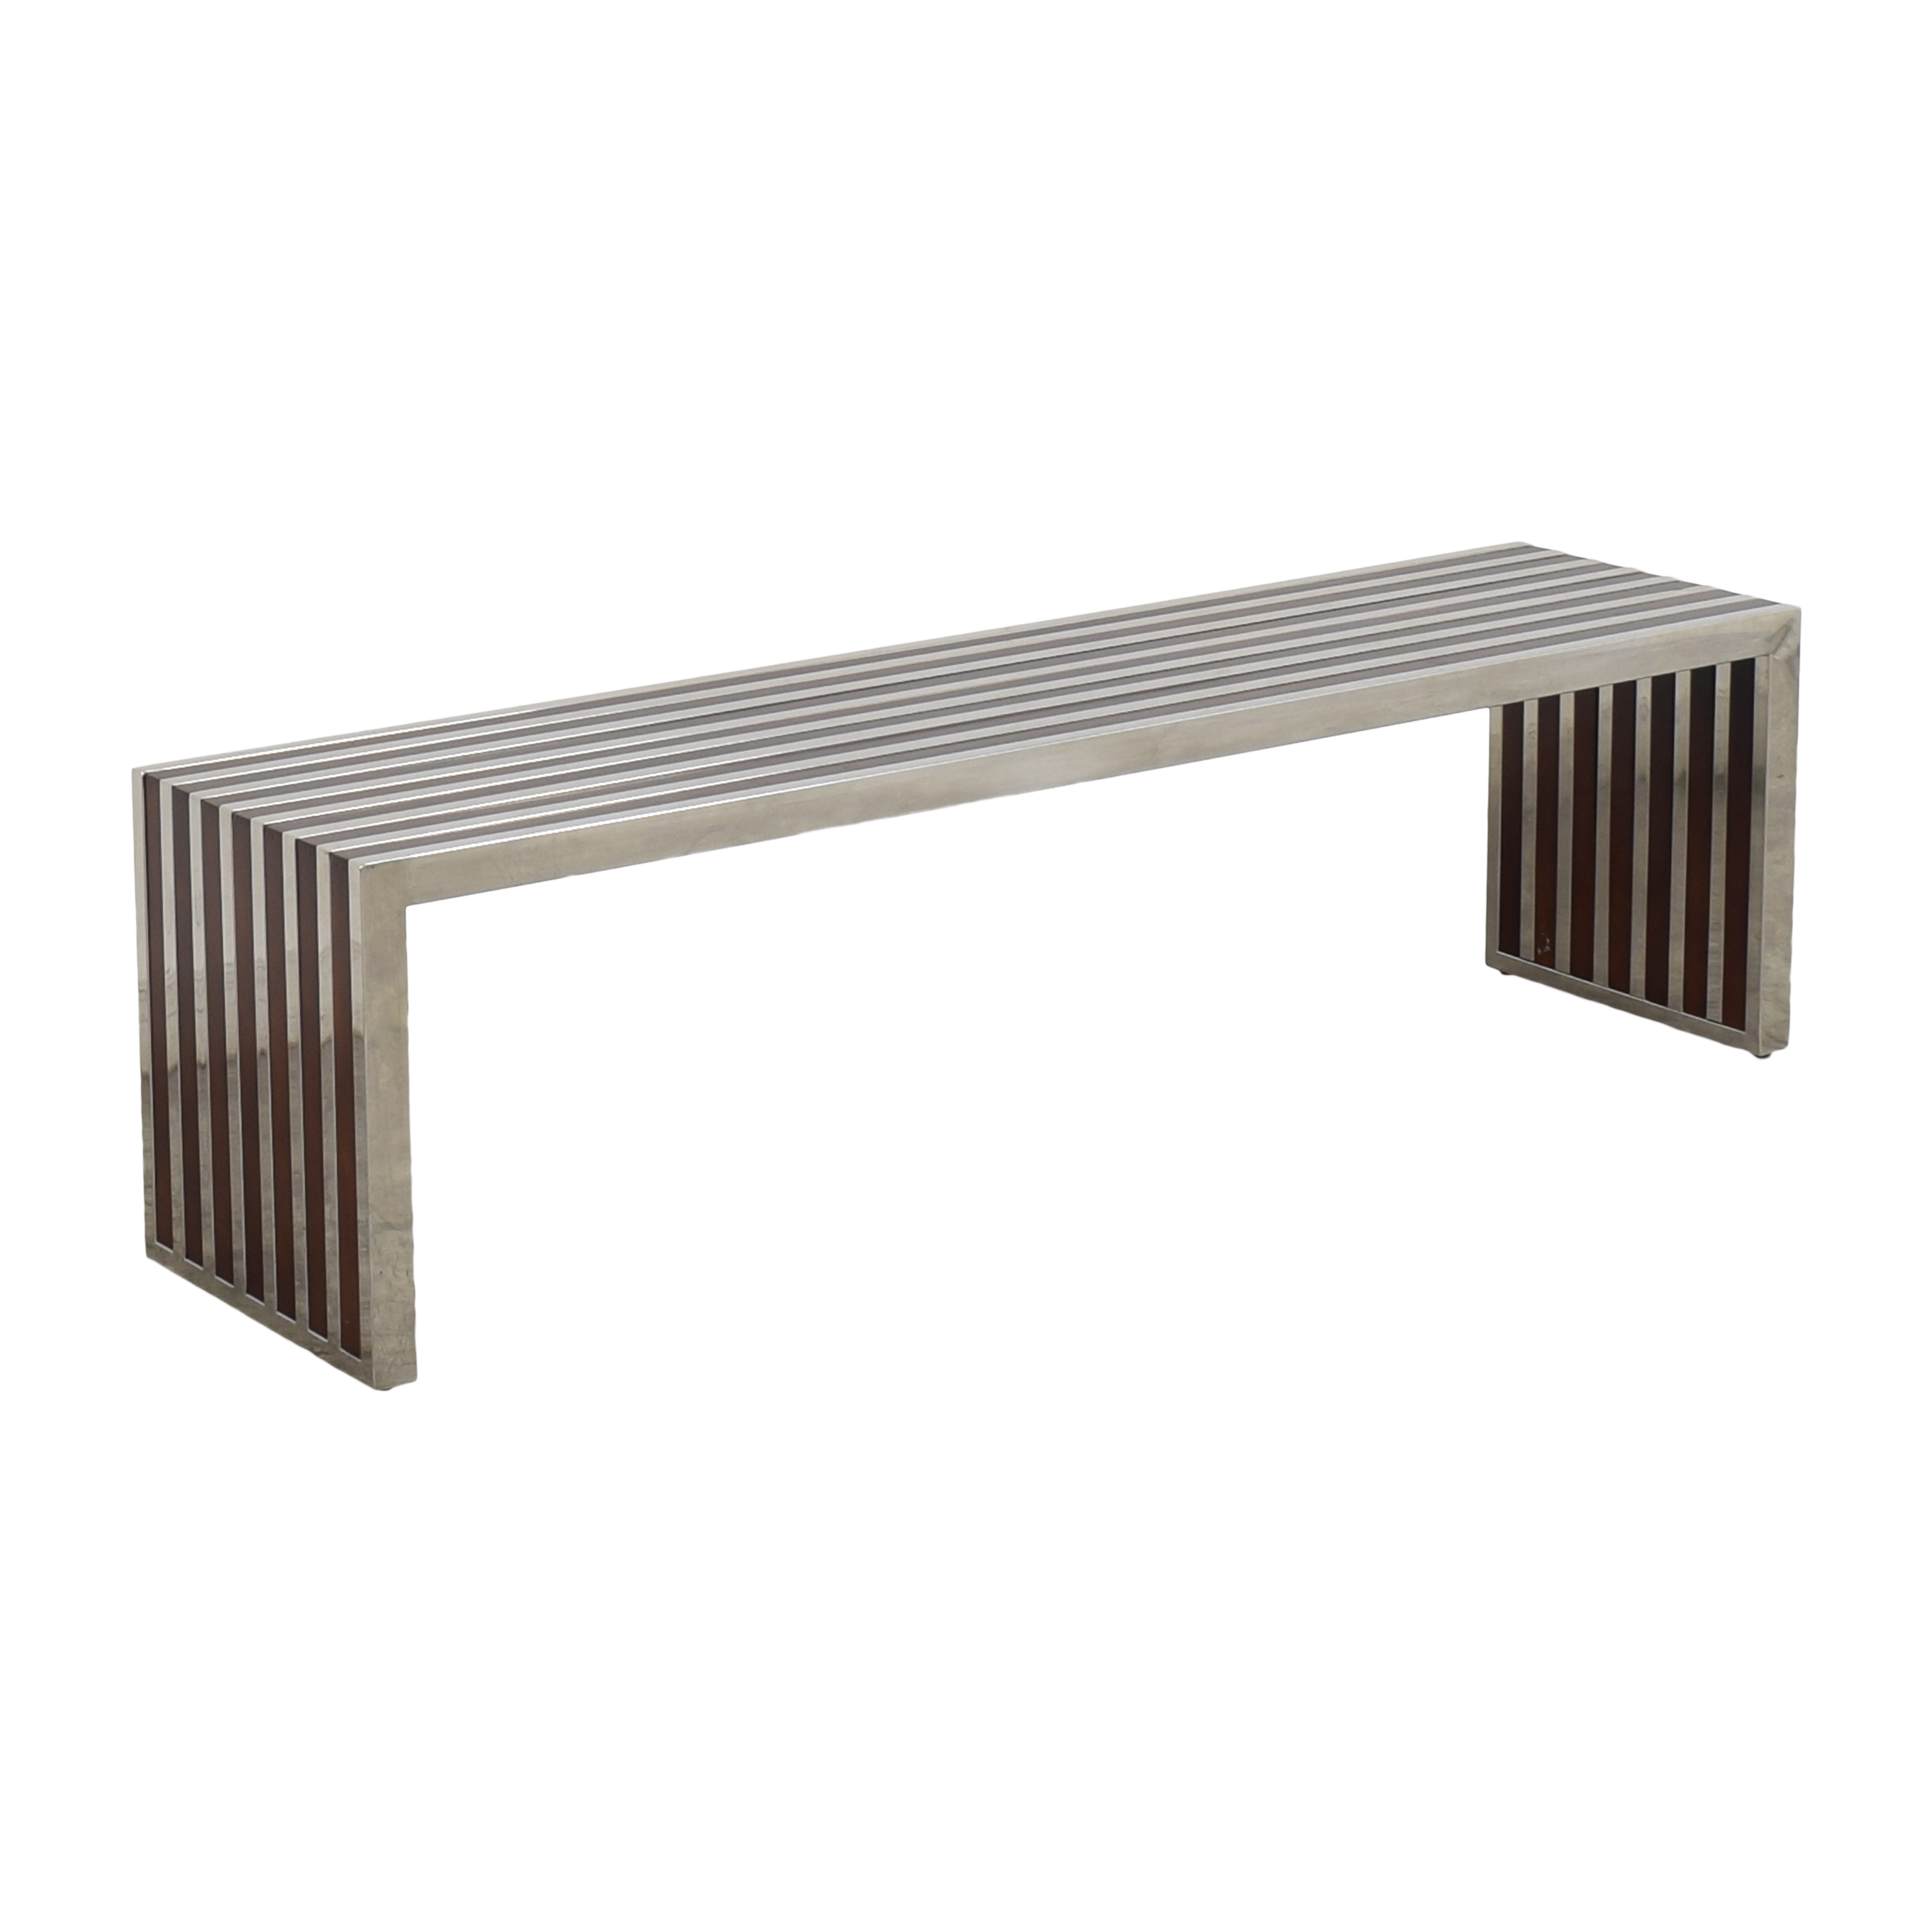 LexMod LexMod Gridiron Large Inlay Bench for sale